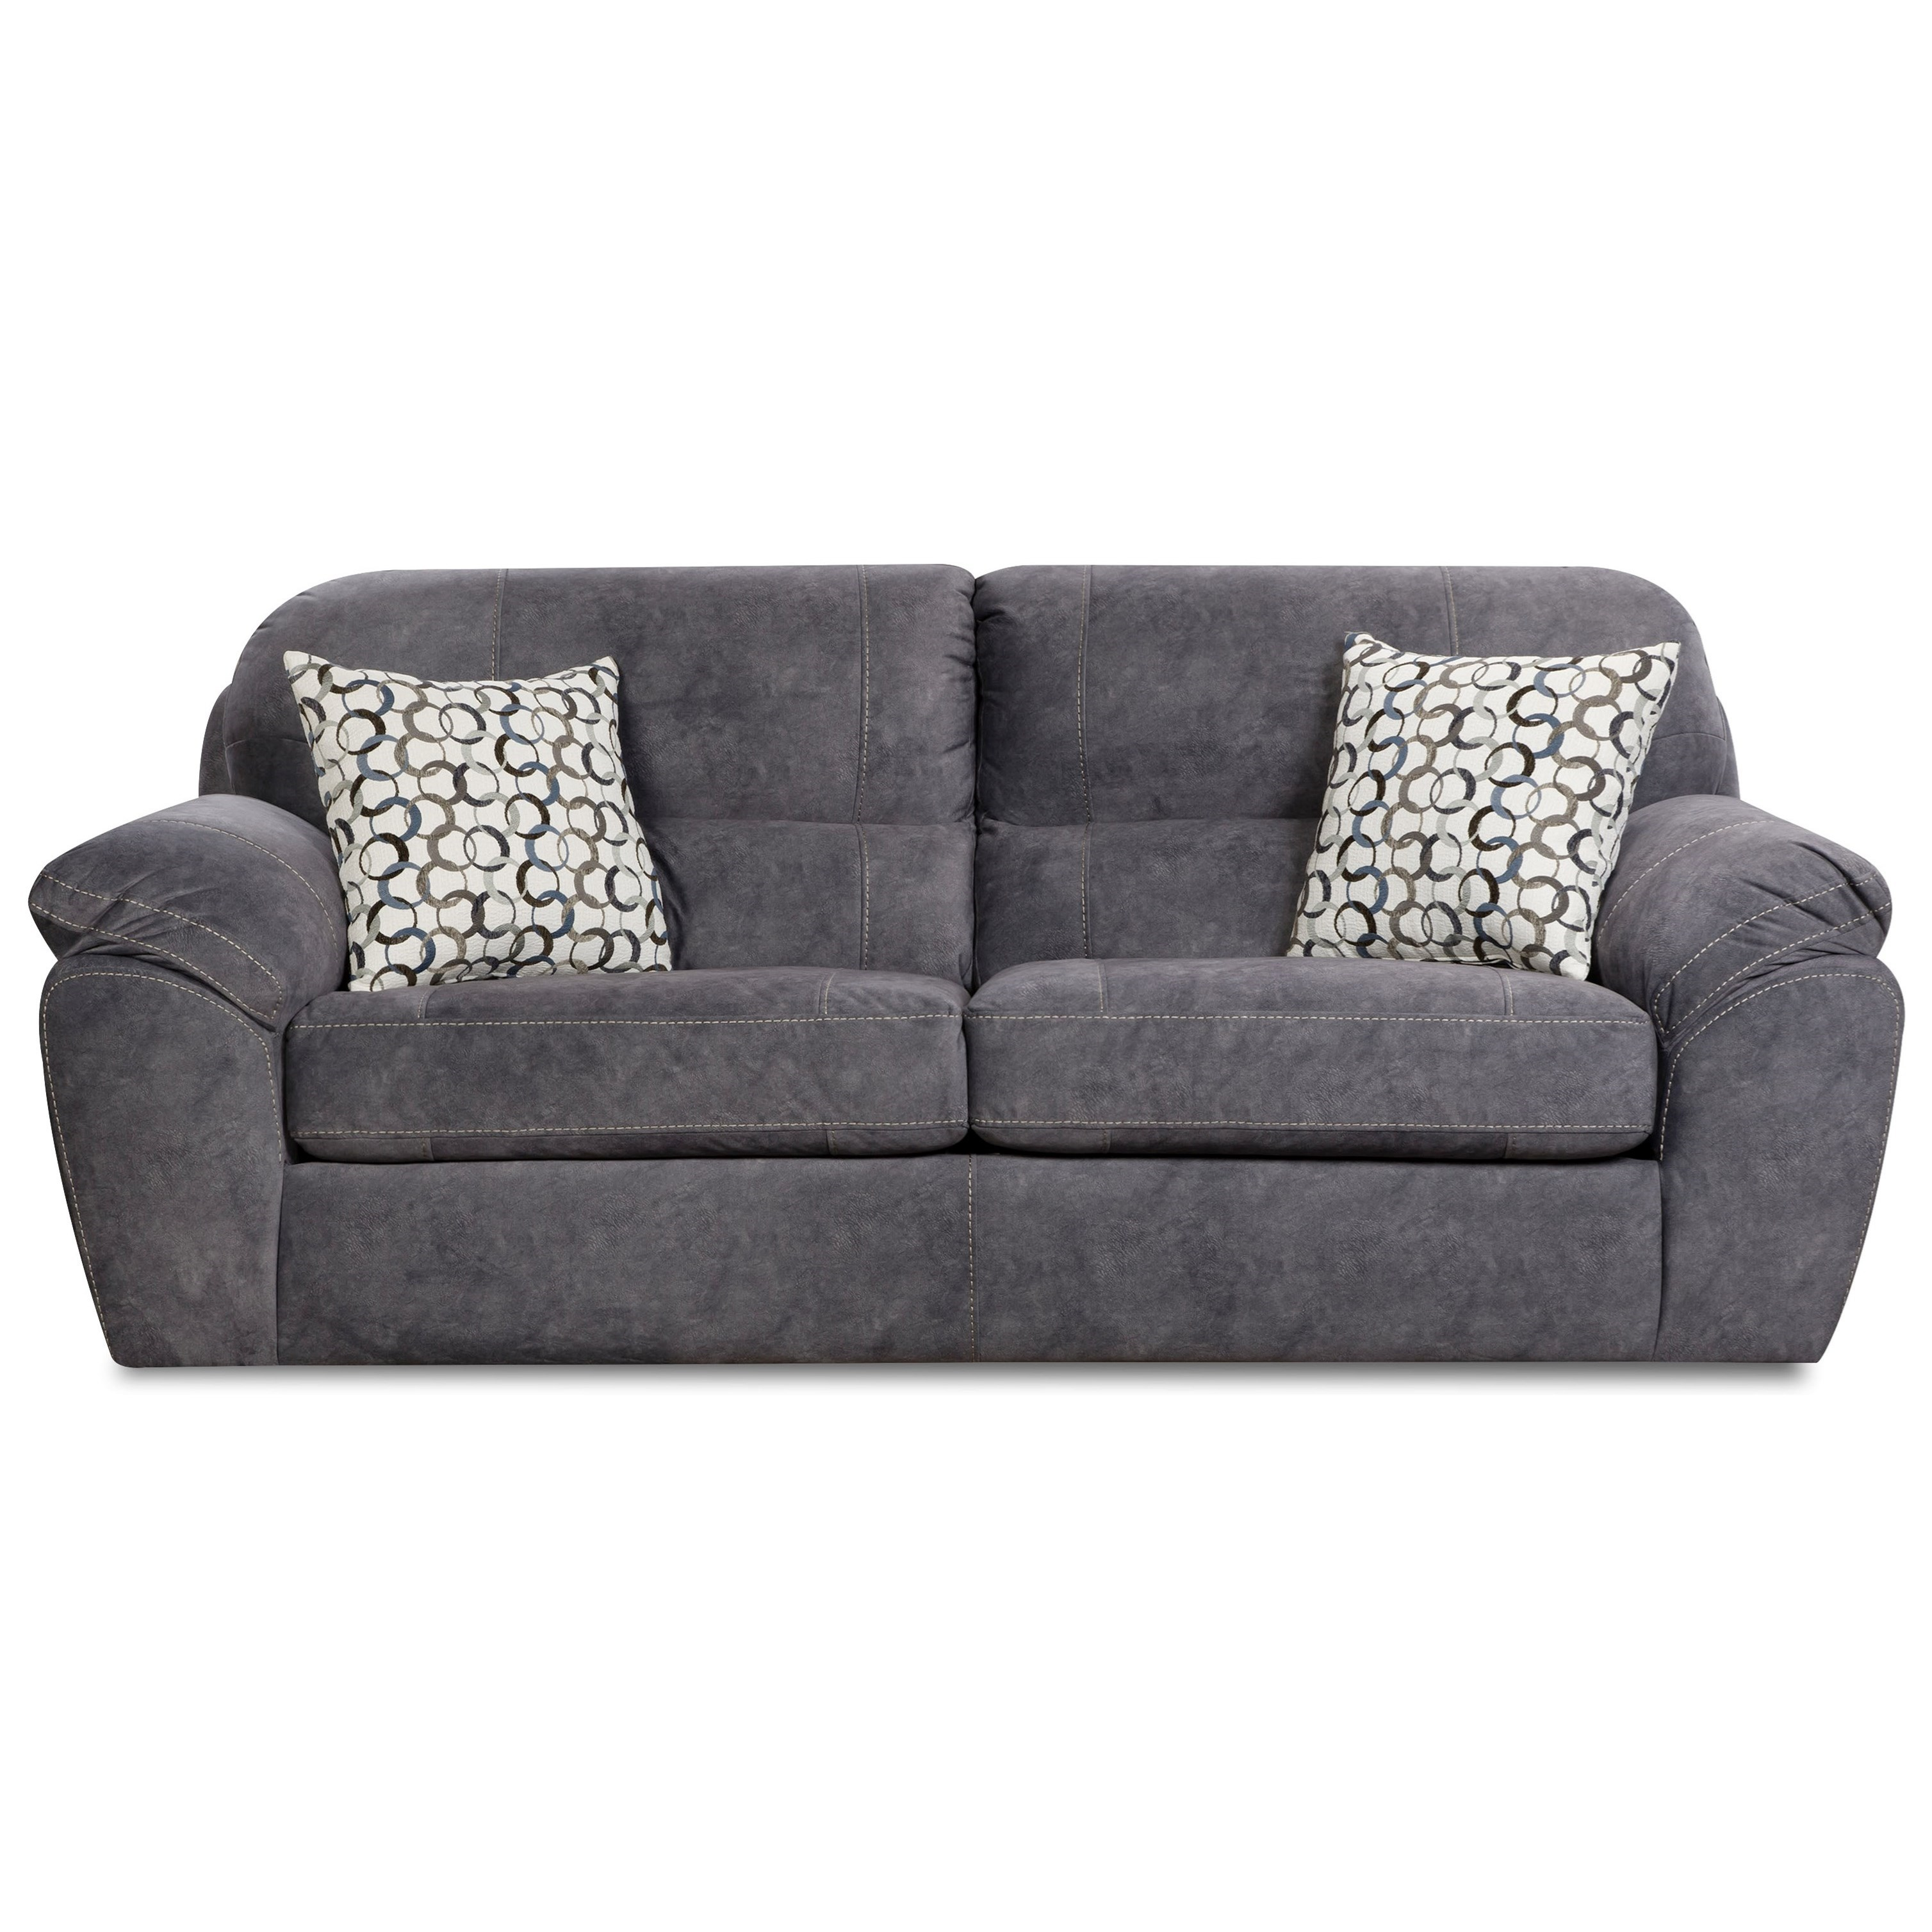 corinthian mead sectional sofa palliser construction steel fg18c3 casual plush great american